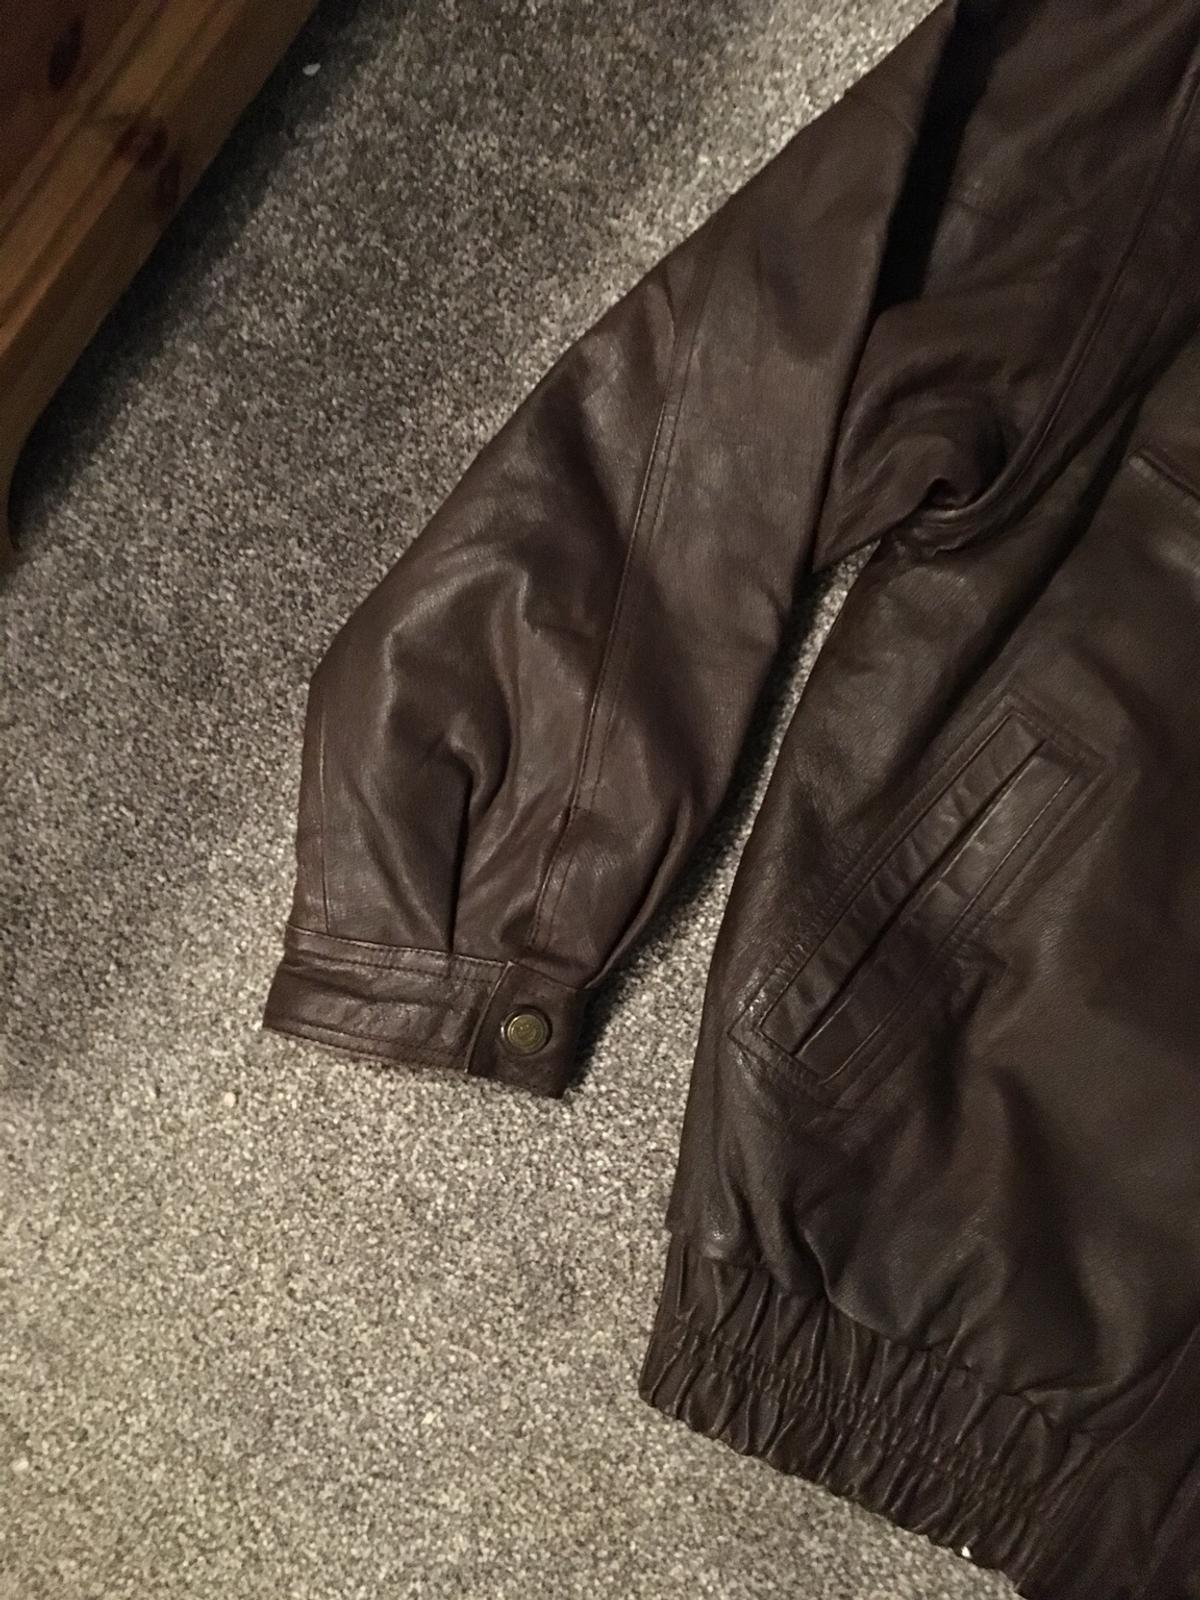 Large men's leather Jacket as detachable sleeves in brilliant condition viewing welcome